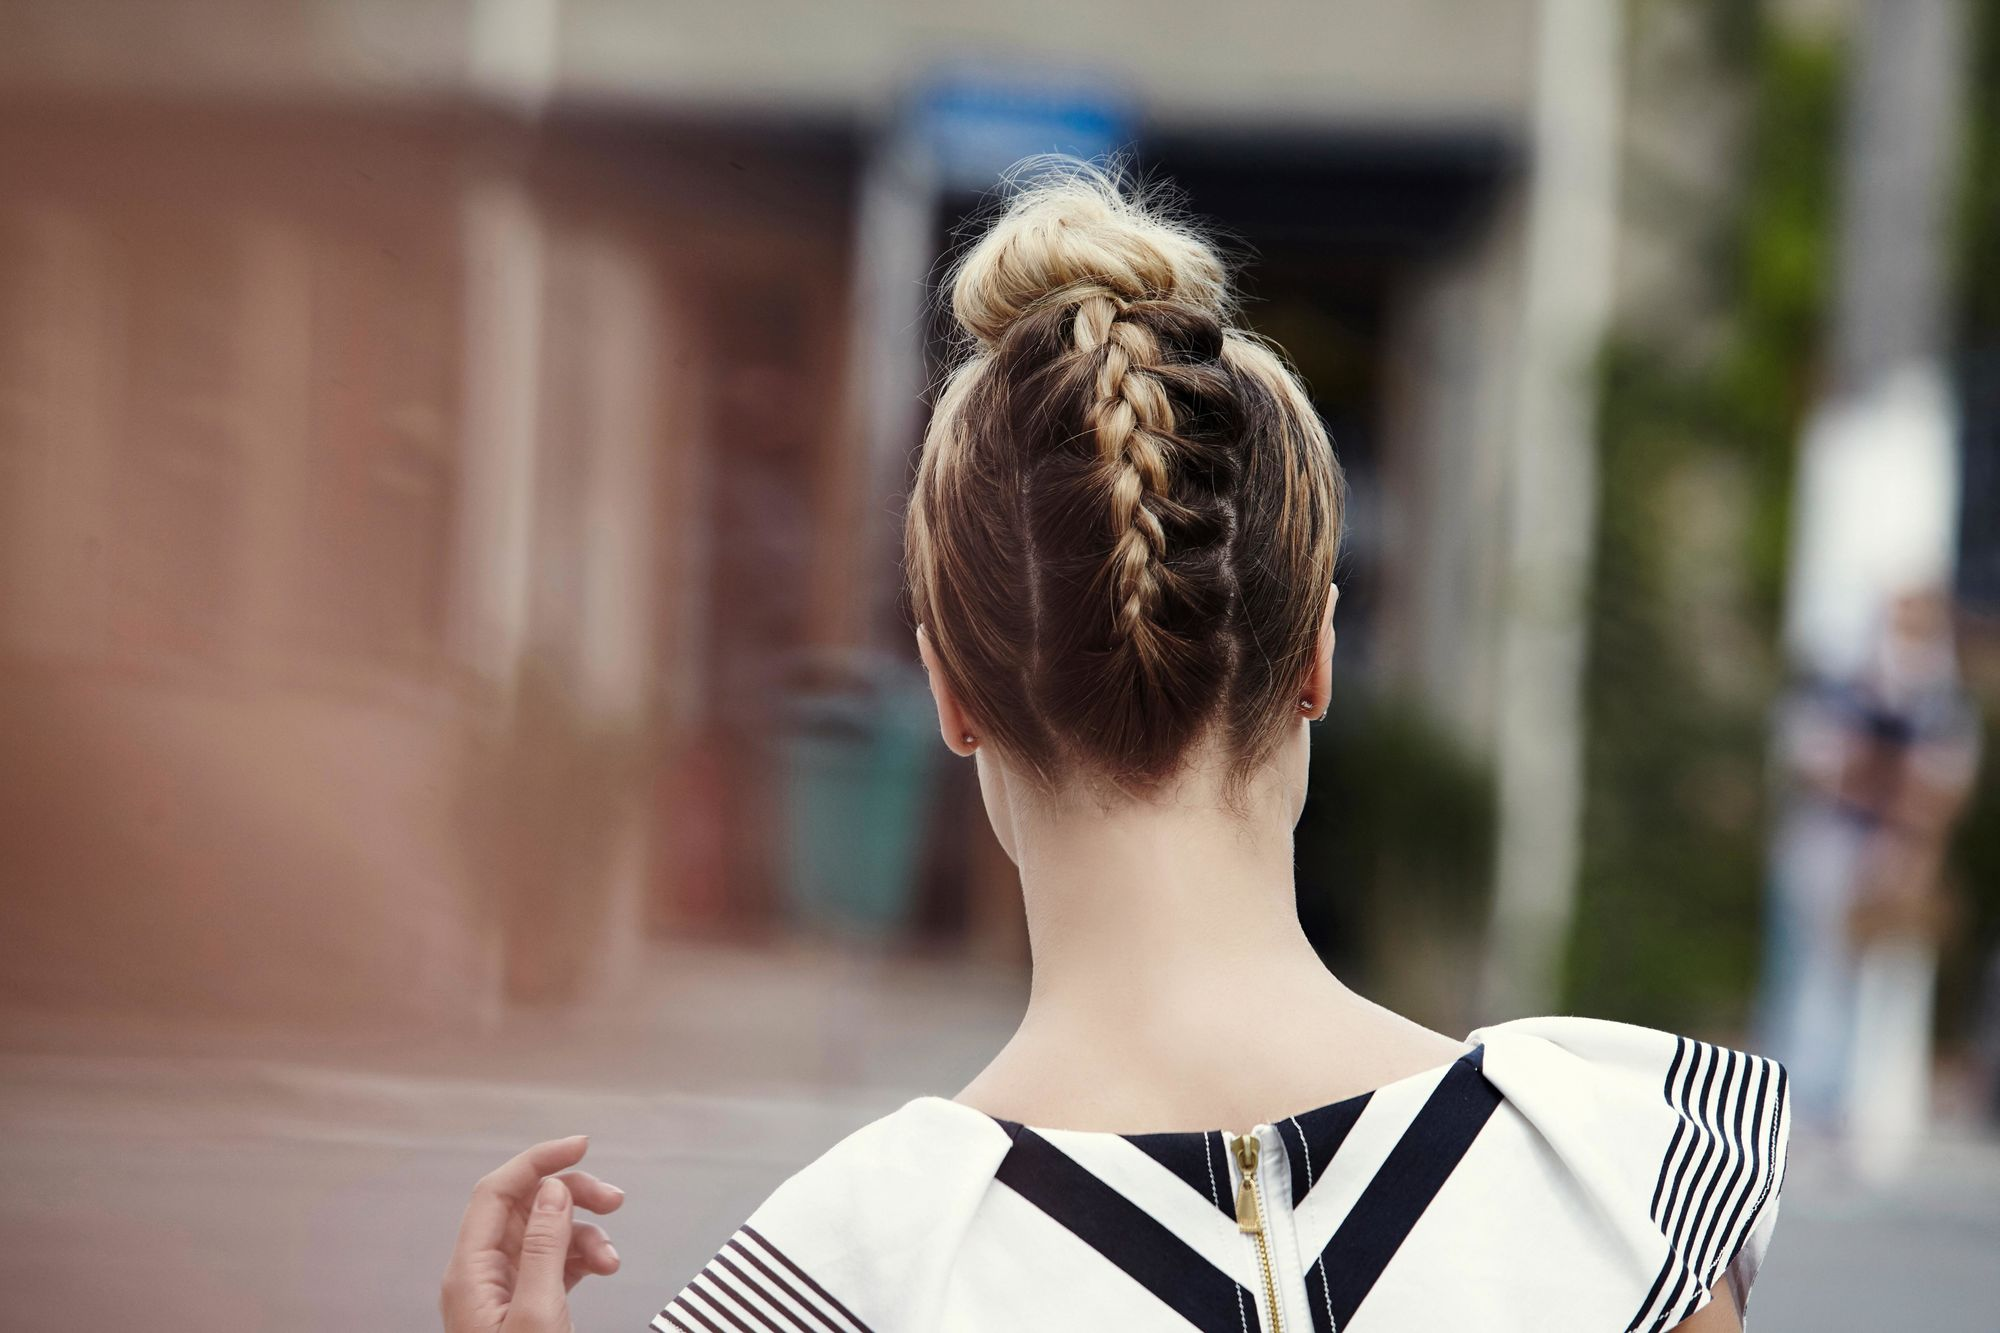 French plait styles: Back view of a blonde woman with an upside down French plait bun